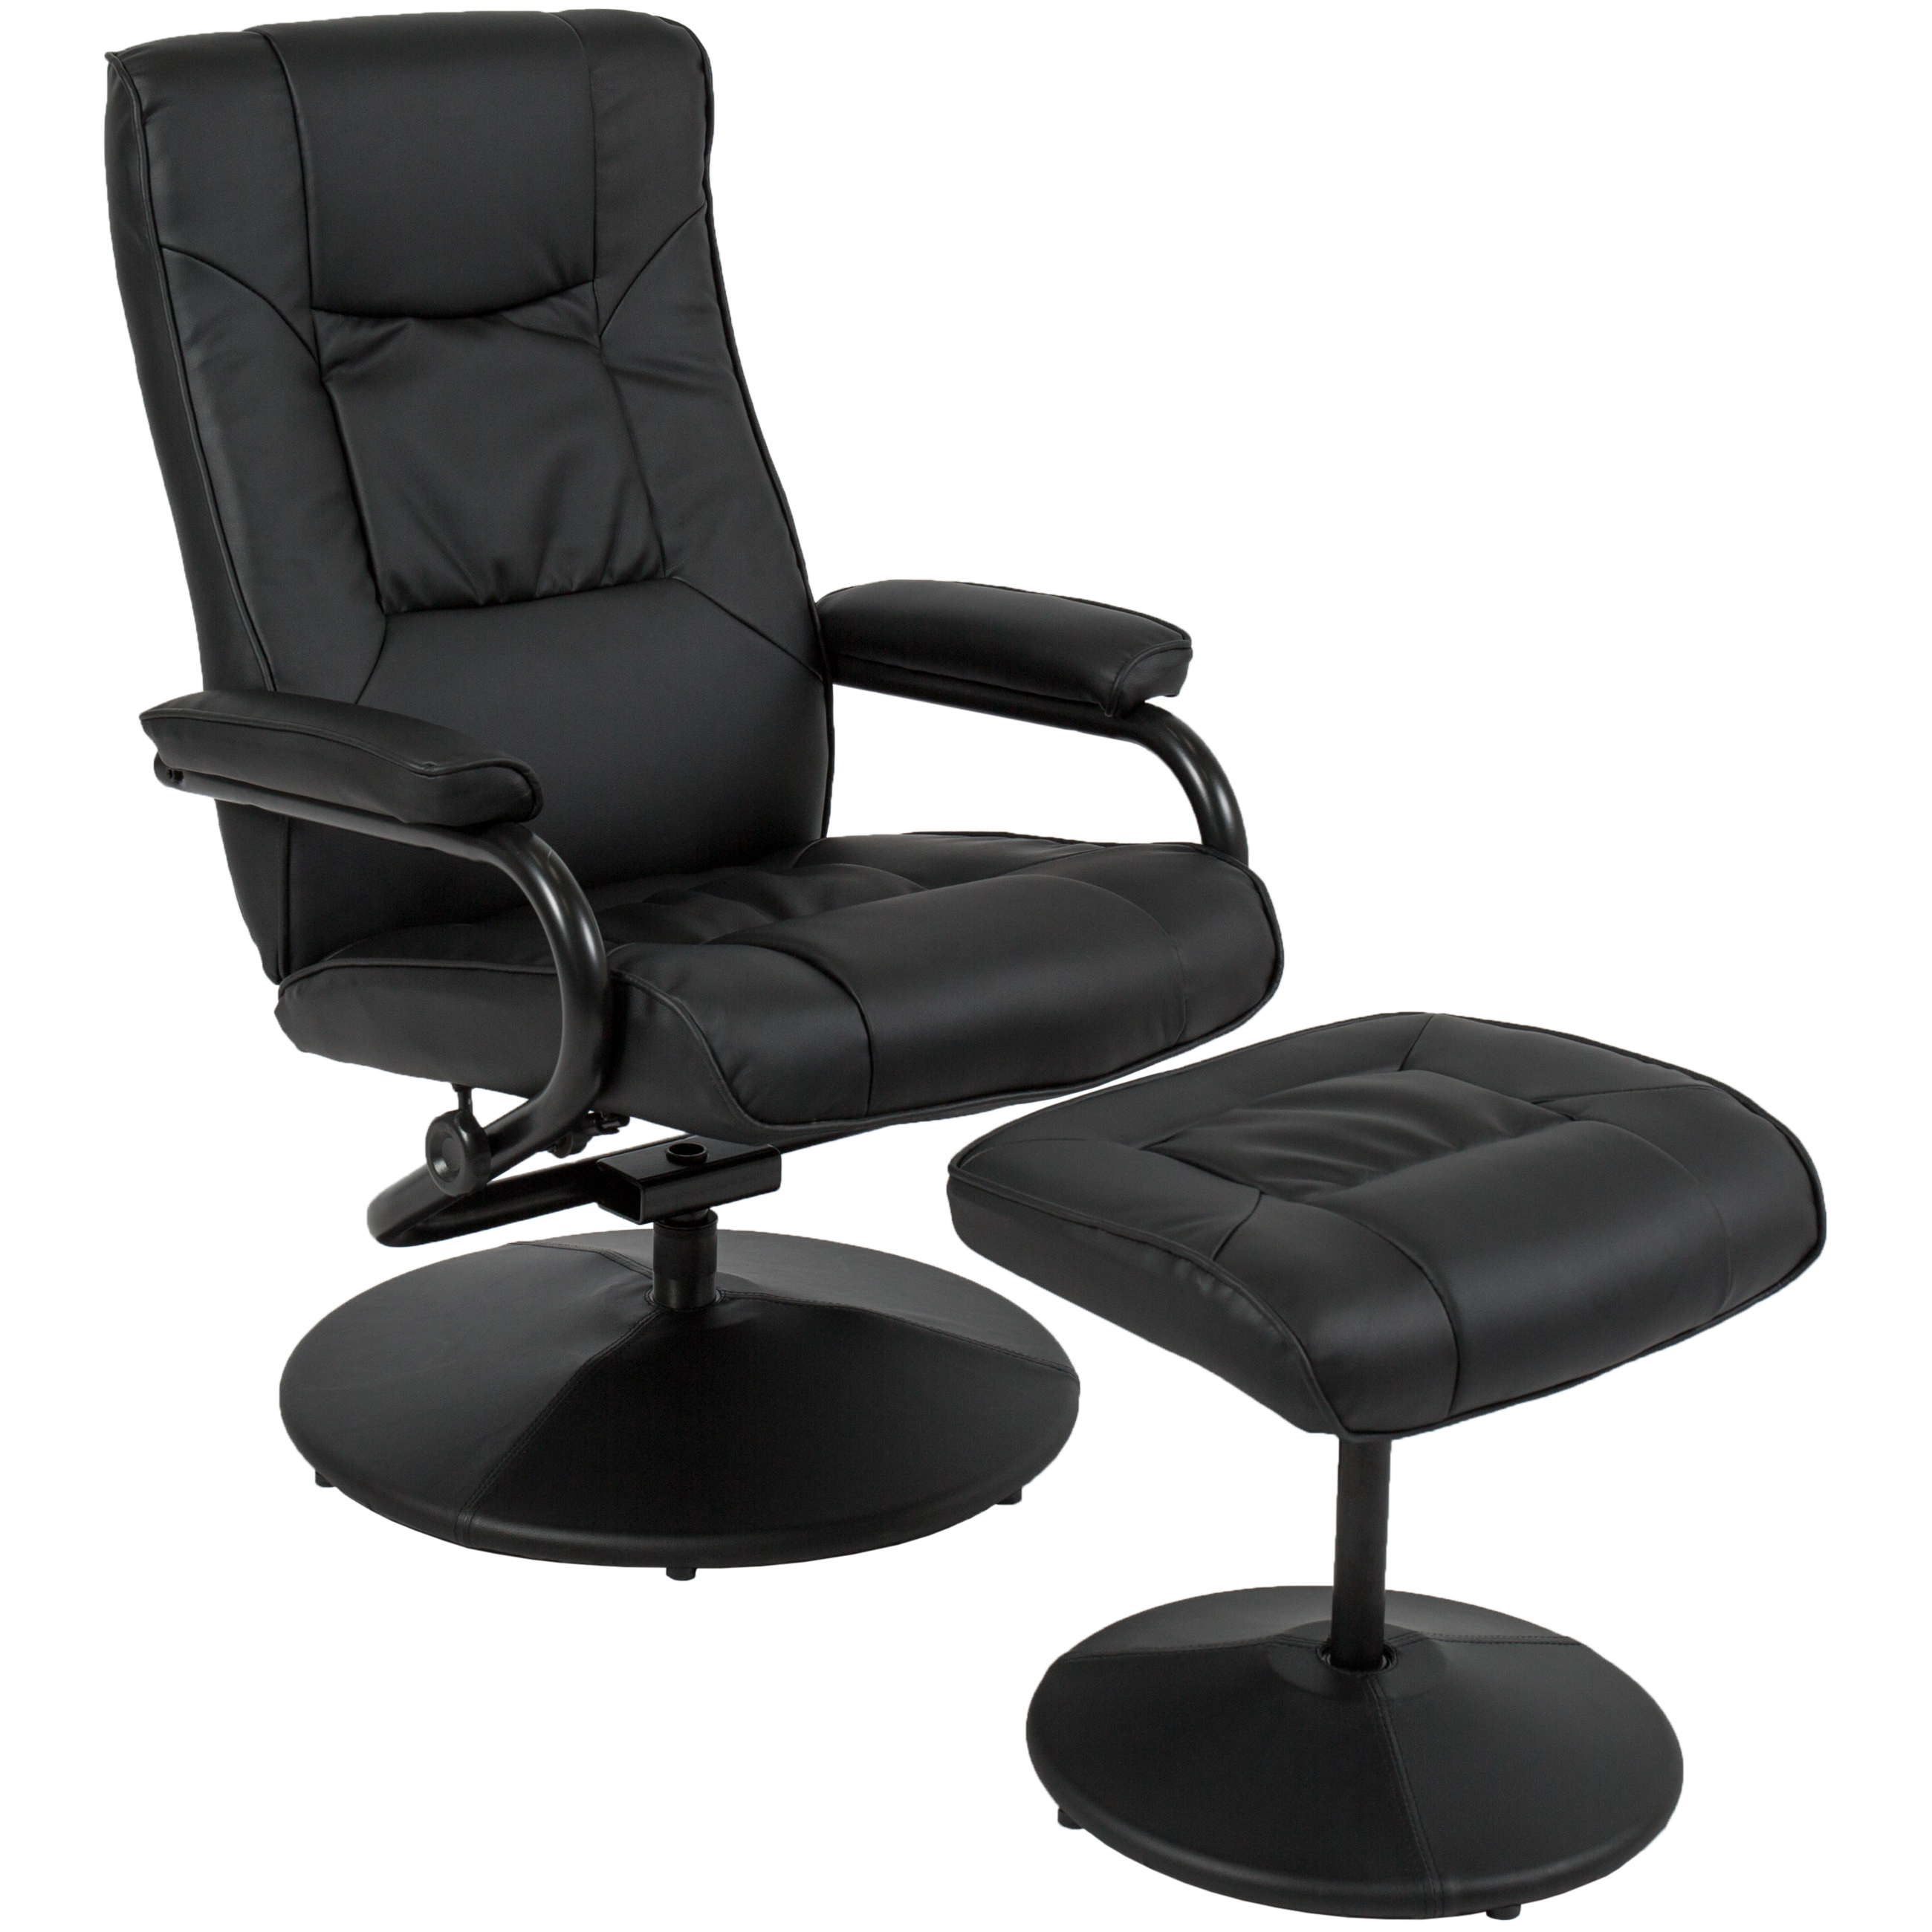 office recliners. best choice products leather swivel recliner chair w ottoman stool black walmartcom office recliners r